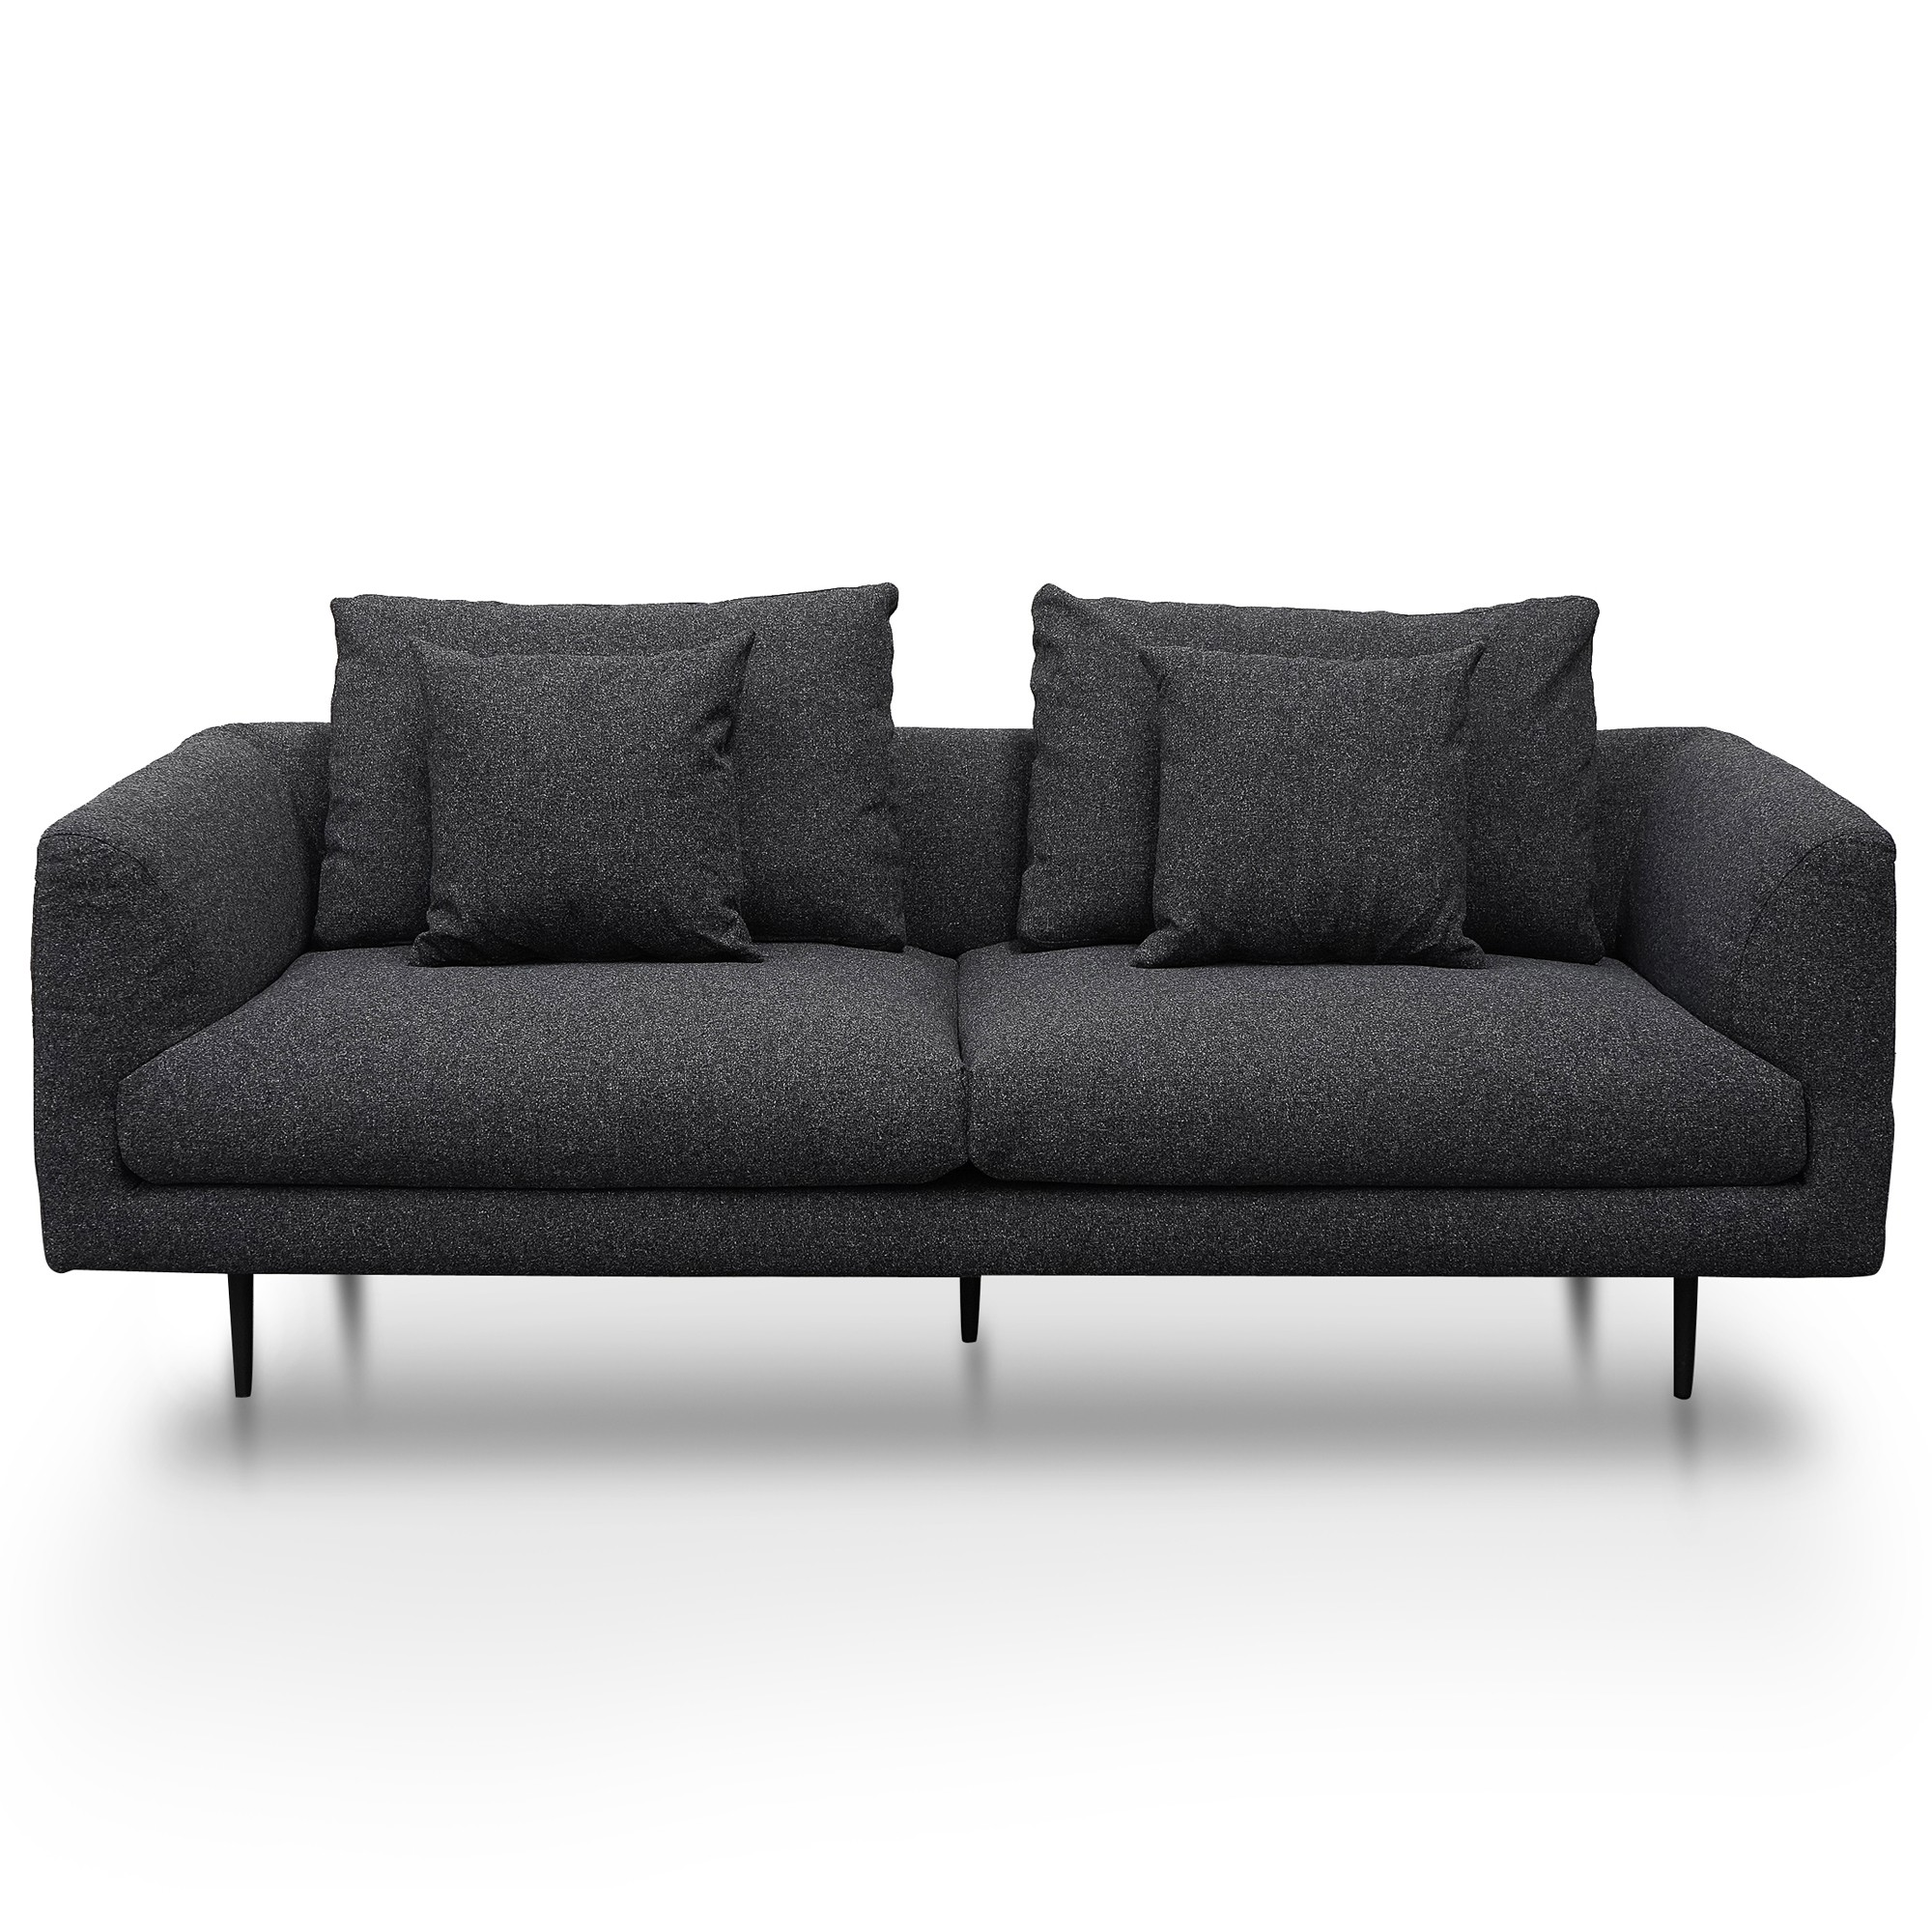 Shepherds Fabric Sofa, 3 Seater, Dark Grey